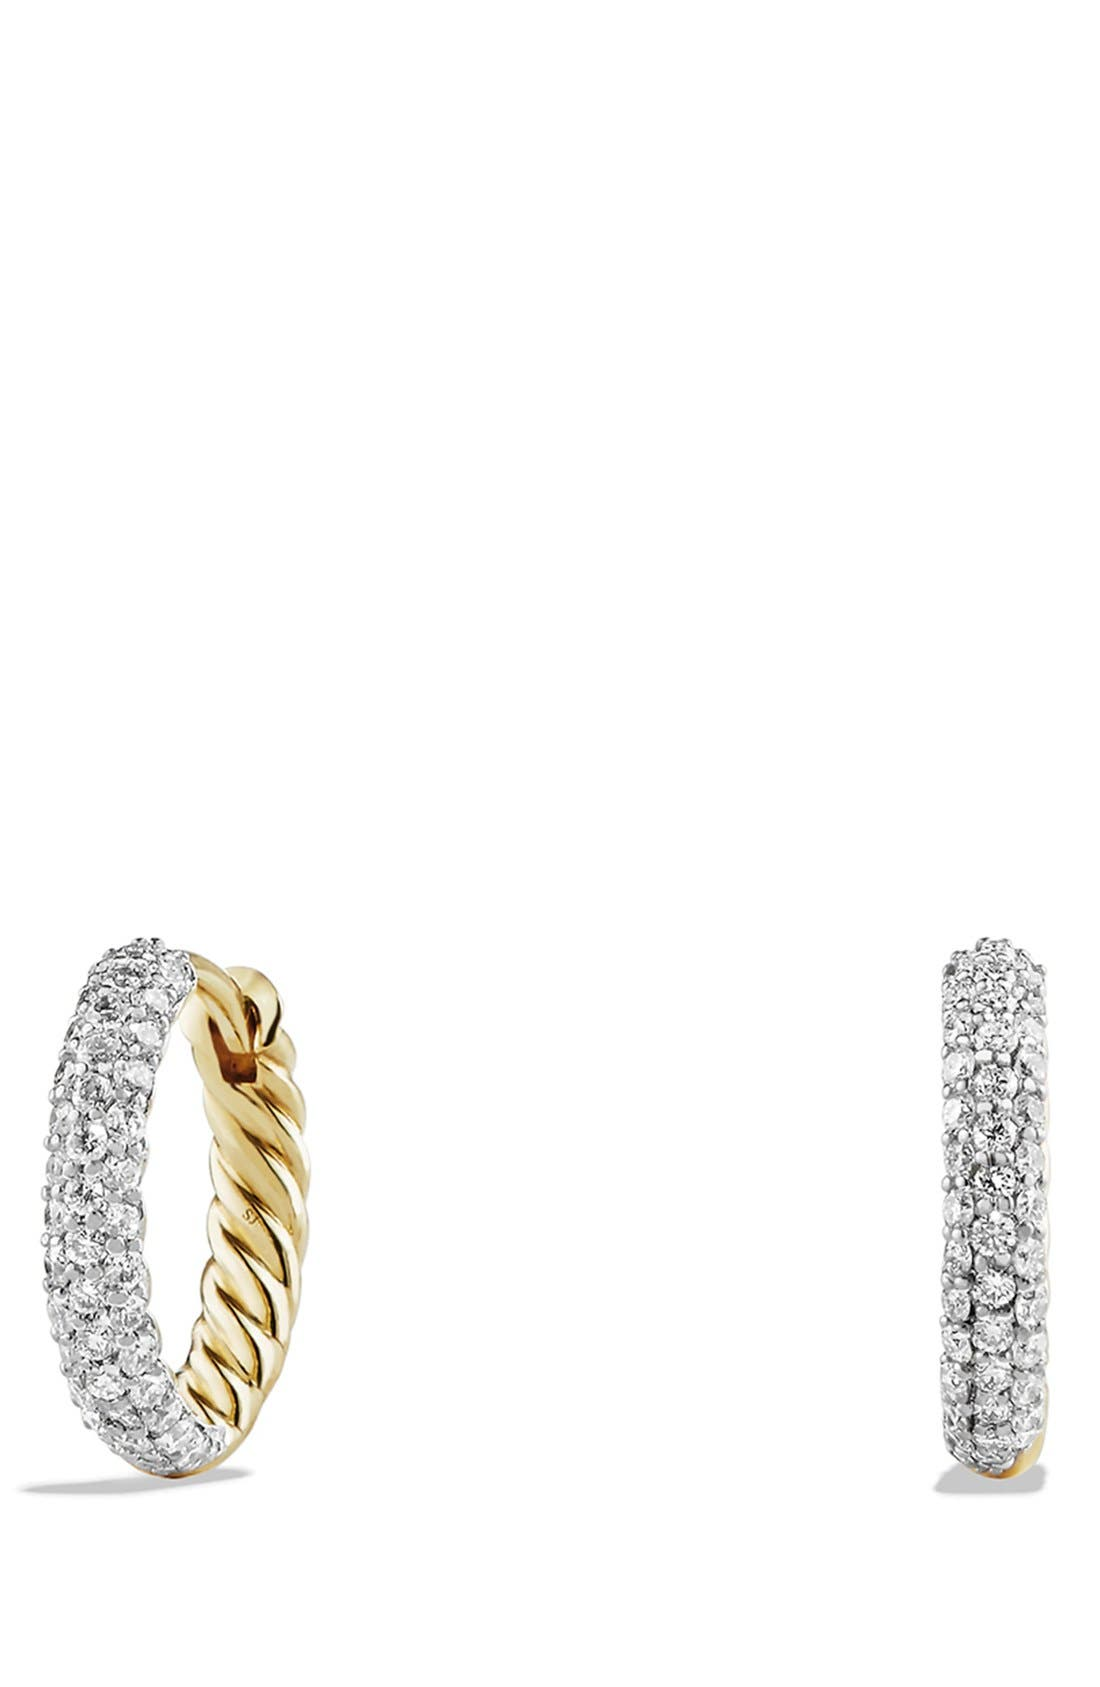 'Petite Pavé' Earrings with Diamonds in 18K Gold,                             Main thumbnail 1, color,                             GOLD